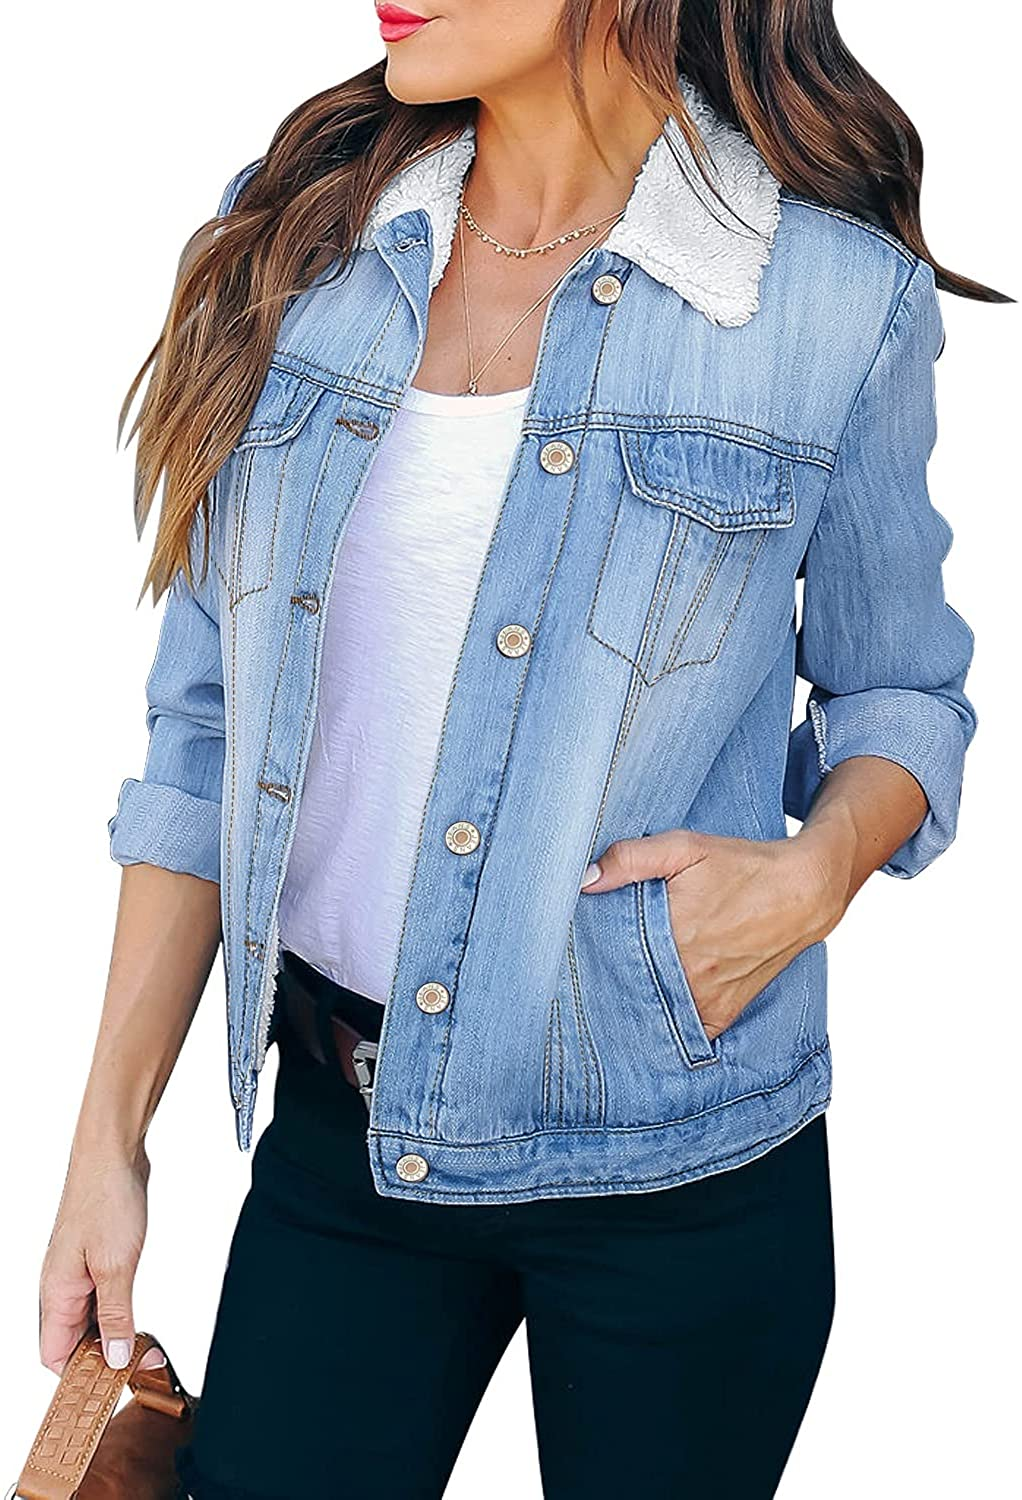 luvamia Women's Basic Button Down Stretch Fitted Long Sleeves Denim Jean Jacket